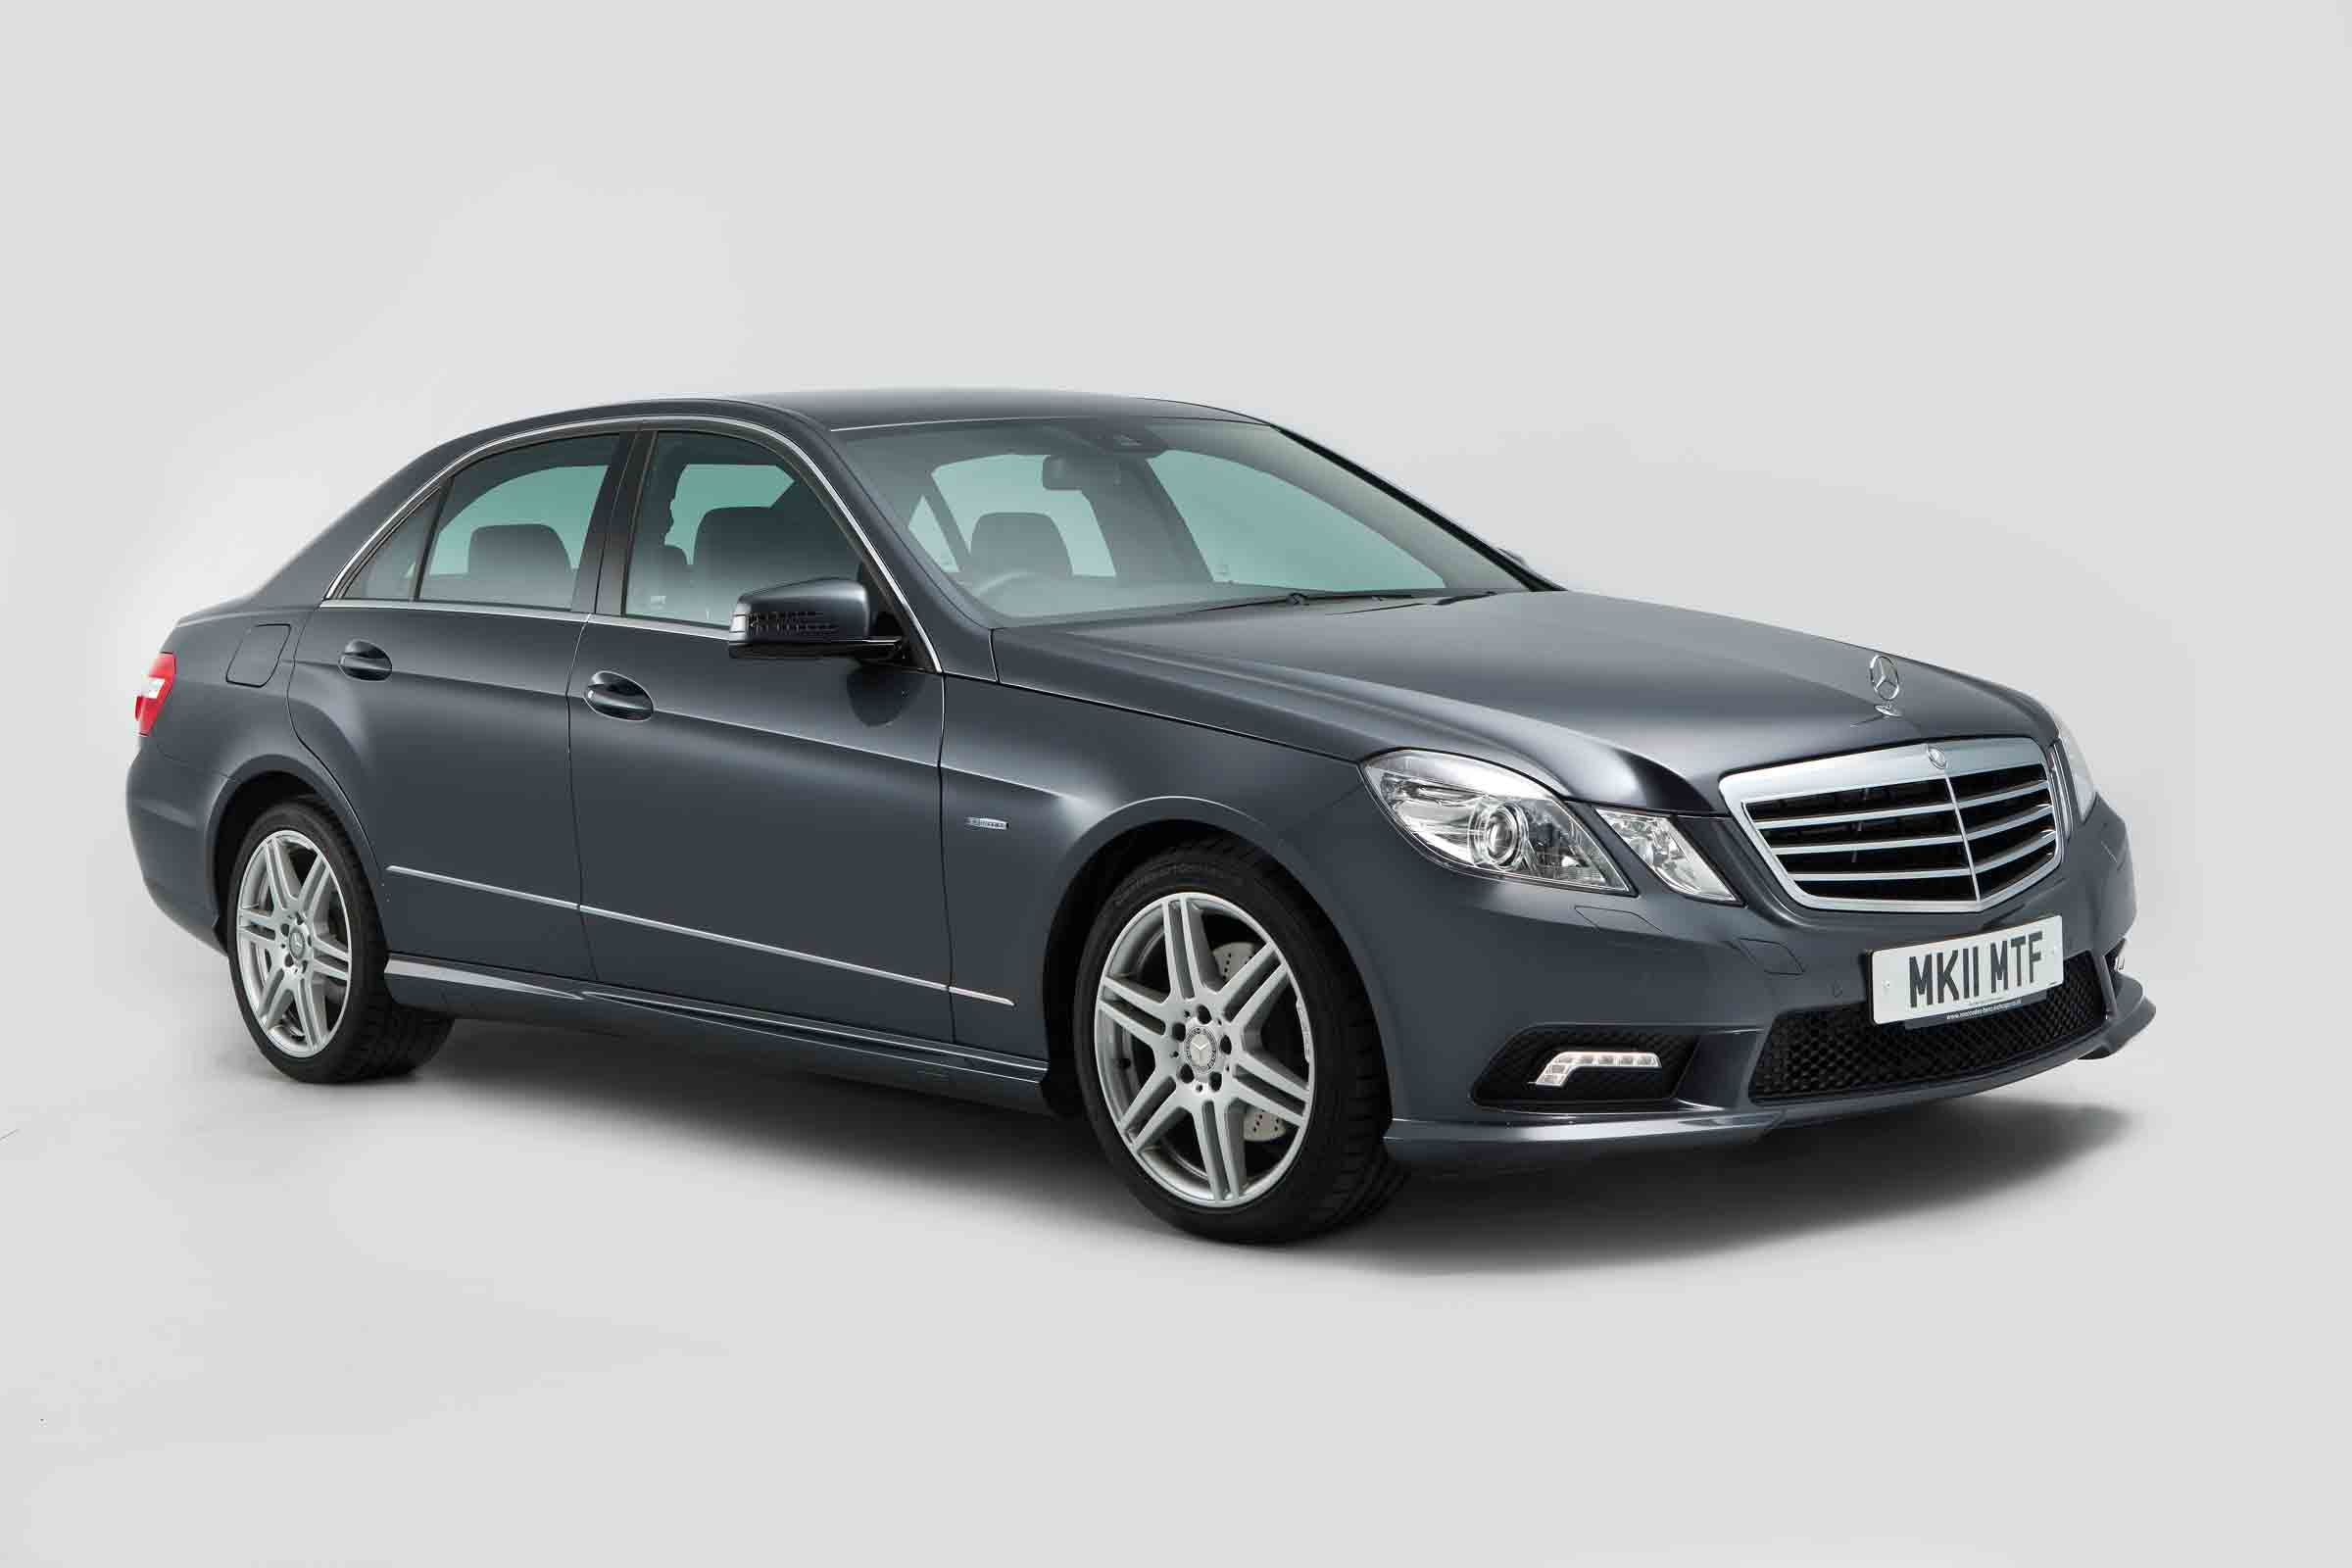 Used Mercedes E Class W212 Buying Guide 2009 2016 Mk4 Carbuyer